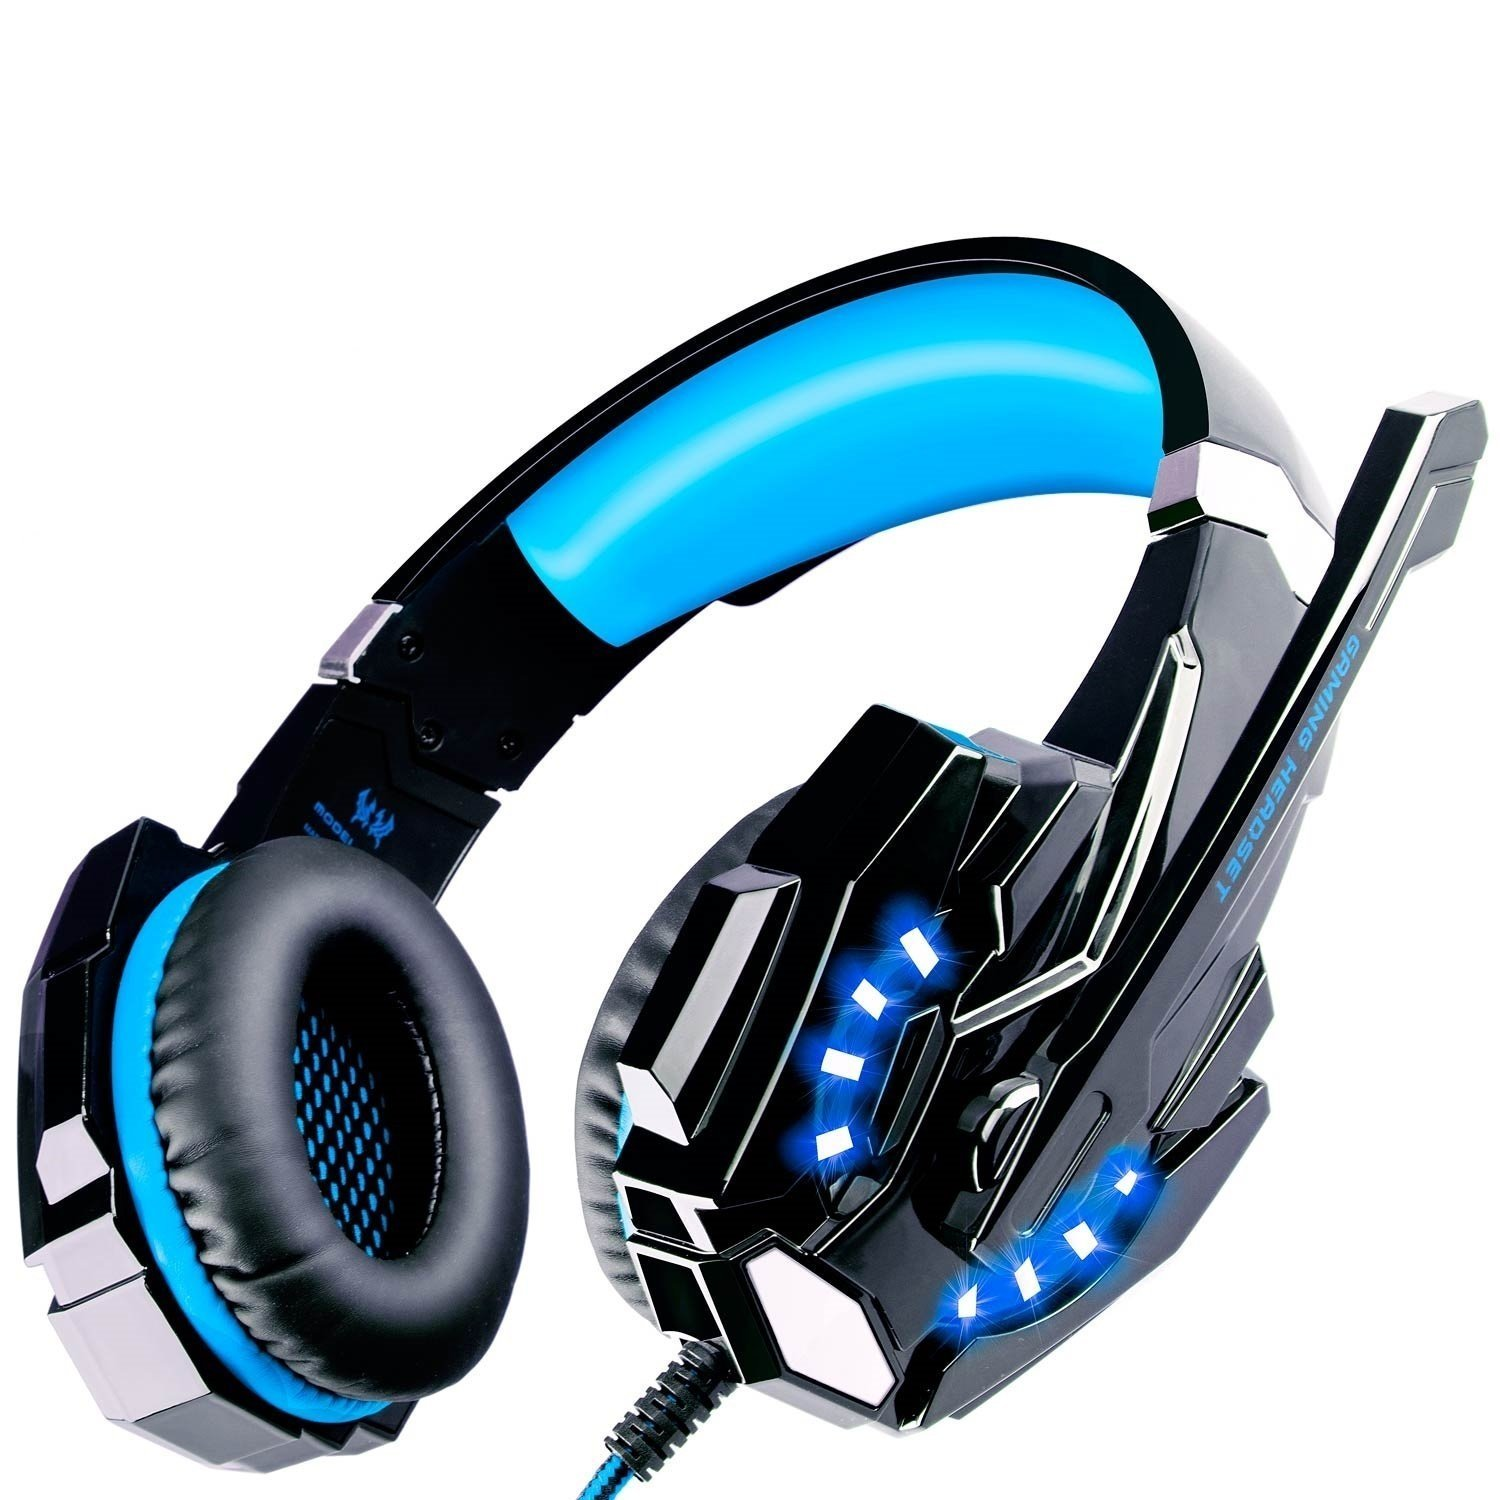 PS4 Headset Best Buy